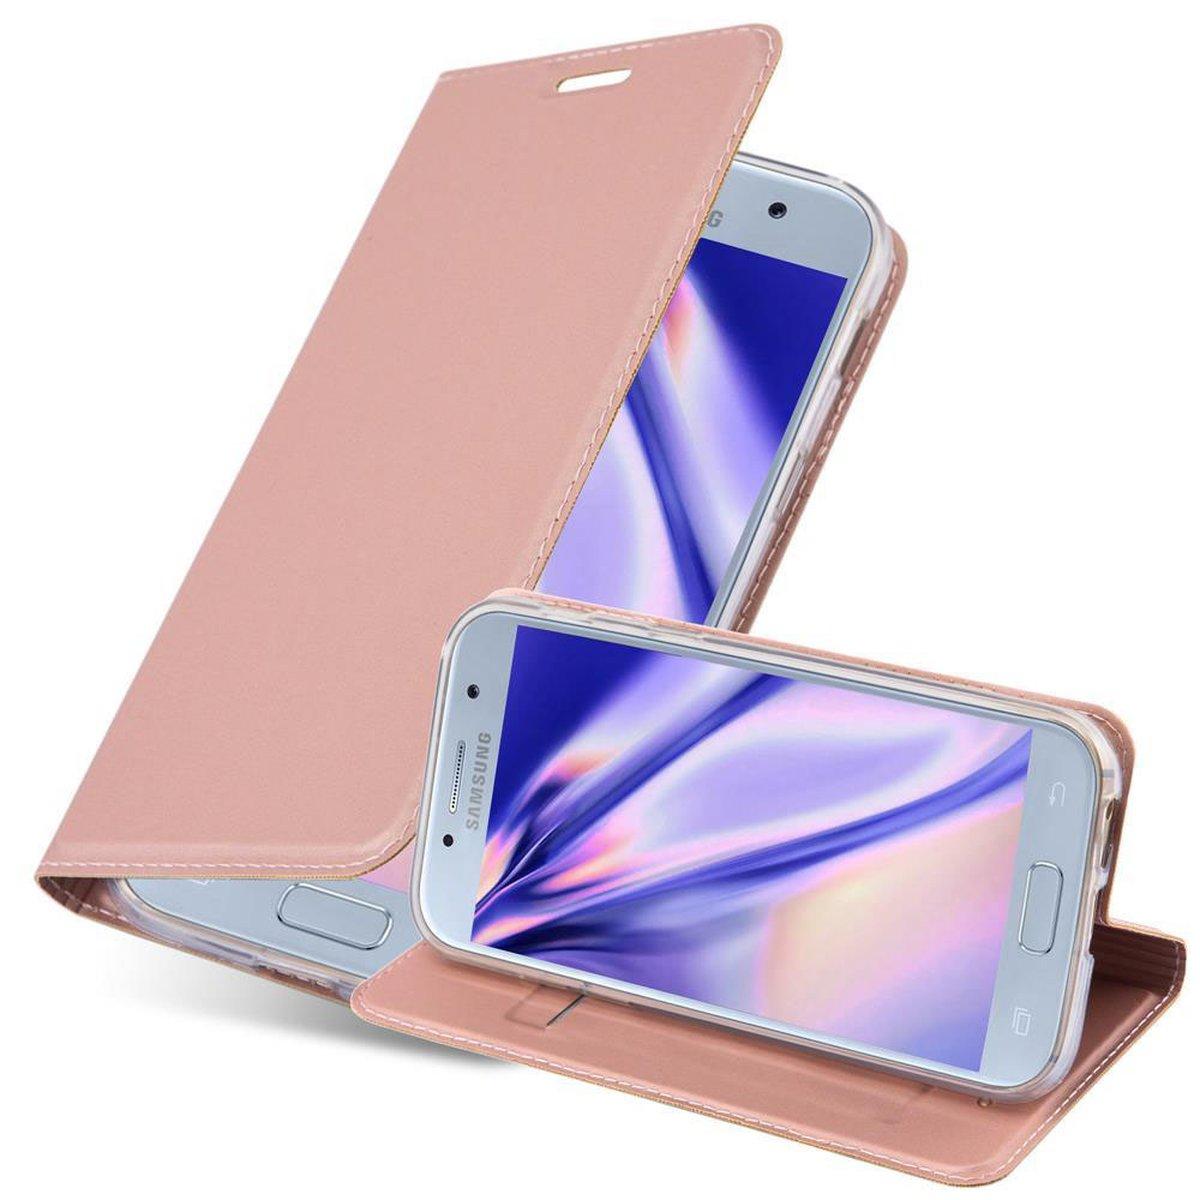 samsung galaxy a3 2017 tasche im metallic look rose gold. Black Bedroom Furniture Sets. Home Design Ideas